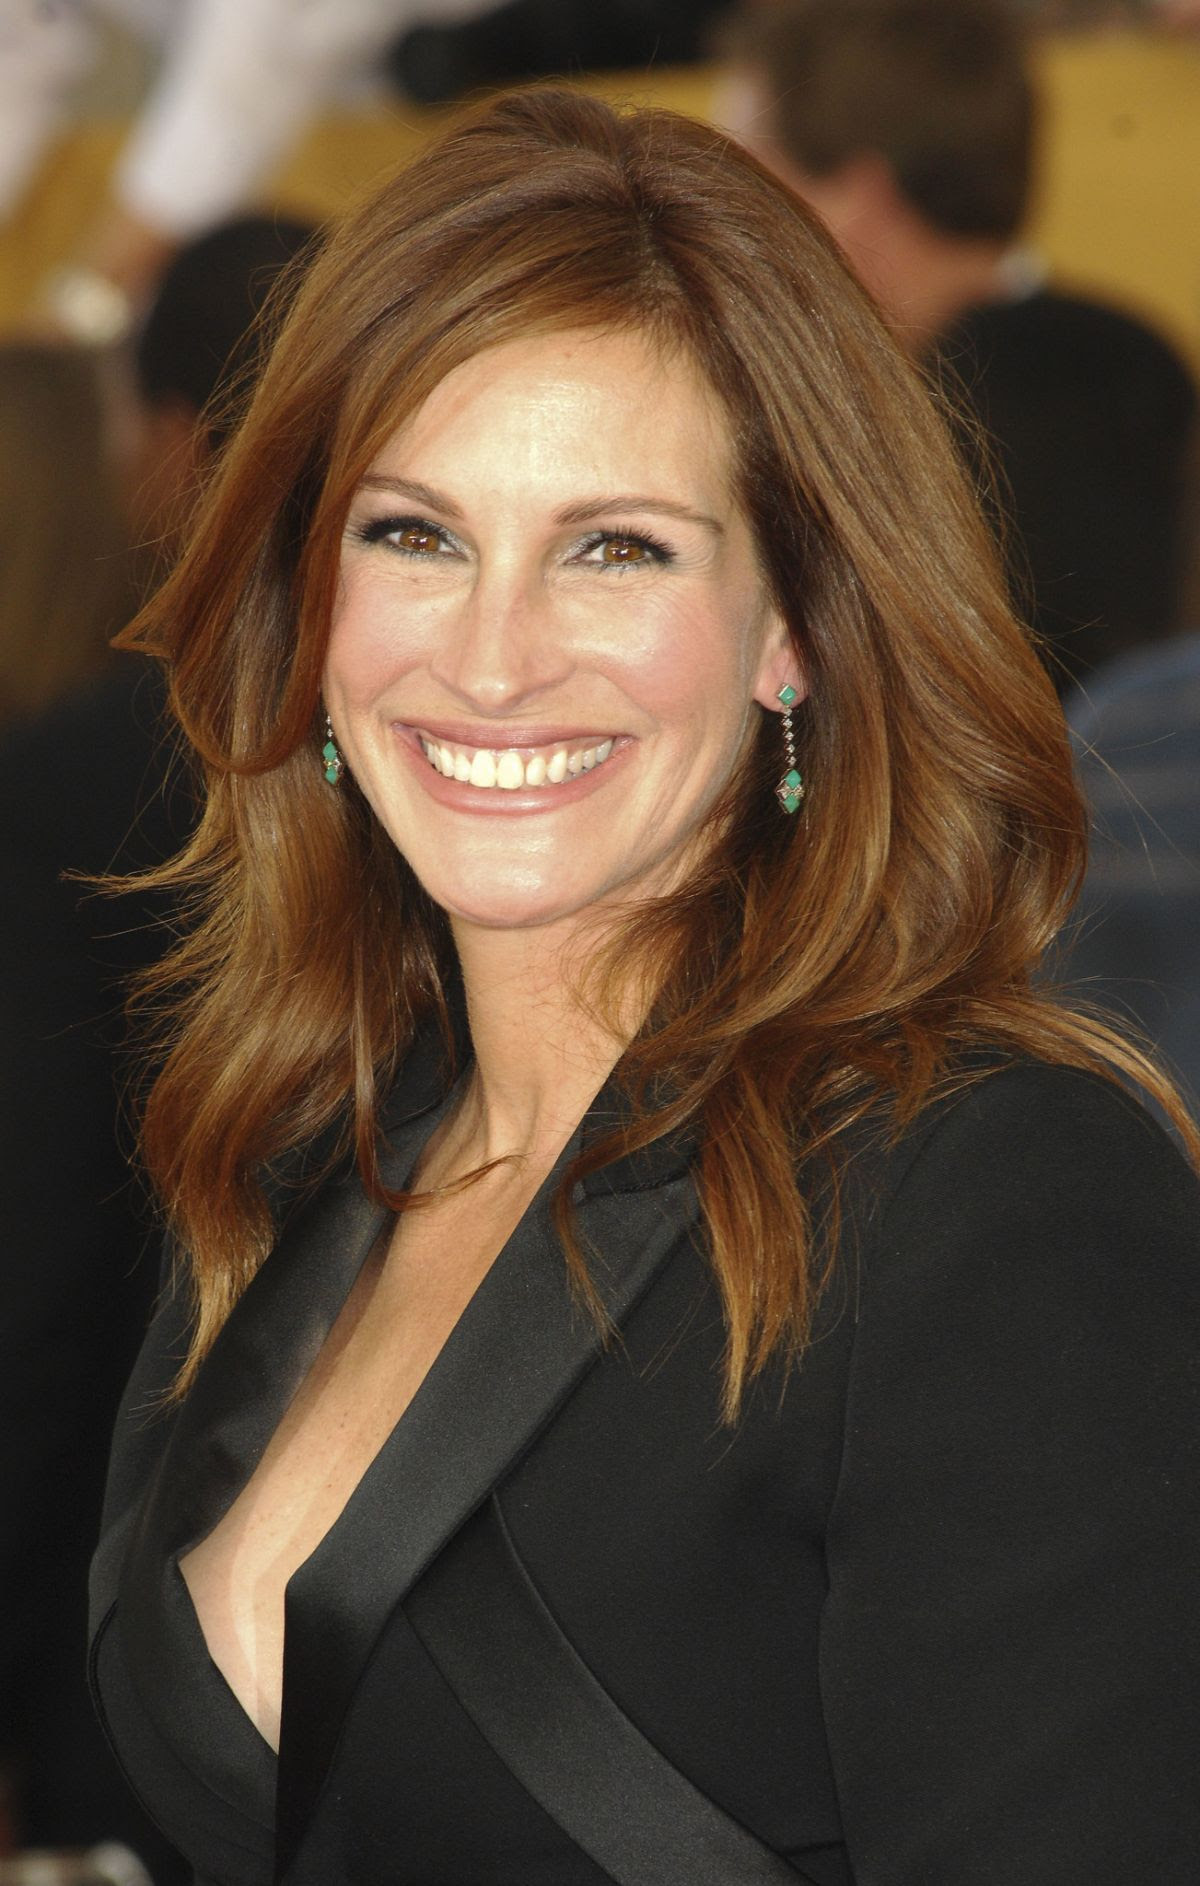 JULIA ROBERTS at 2015 Screen Actor Guild Awards in Los Angeles